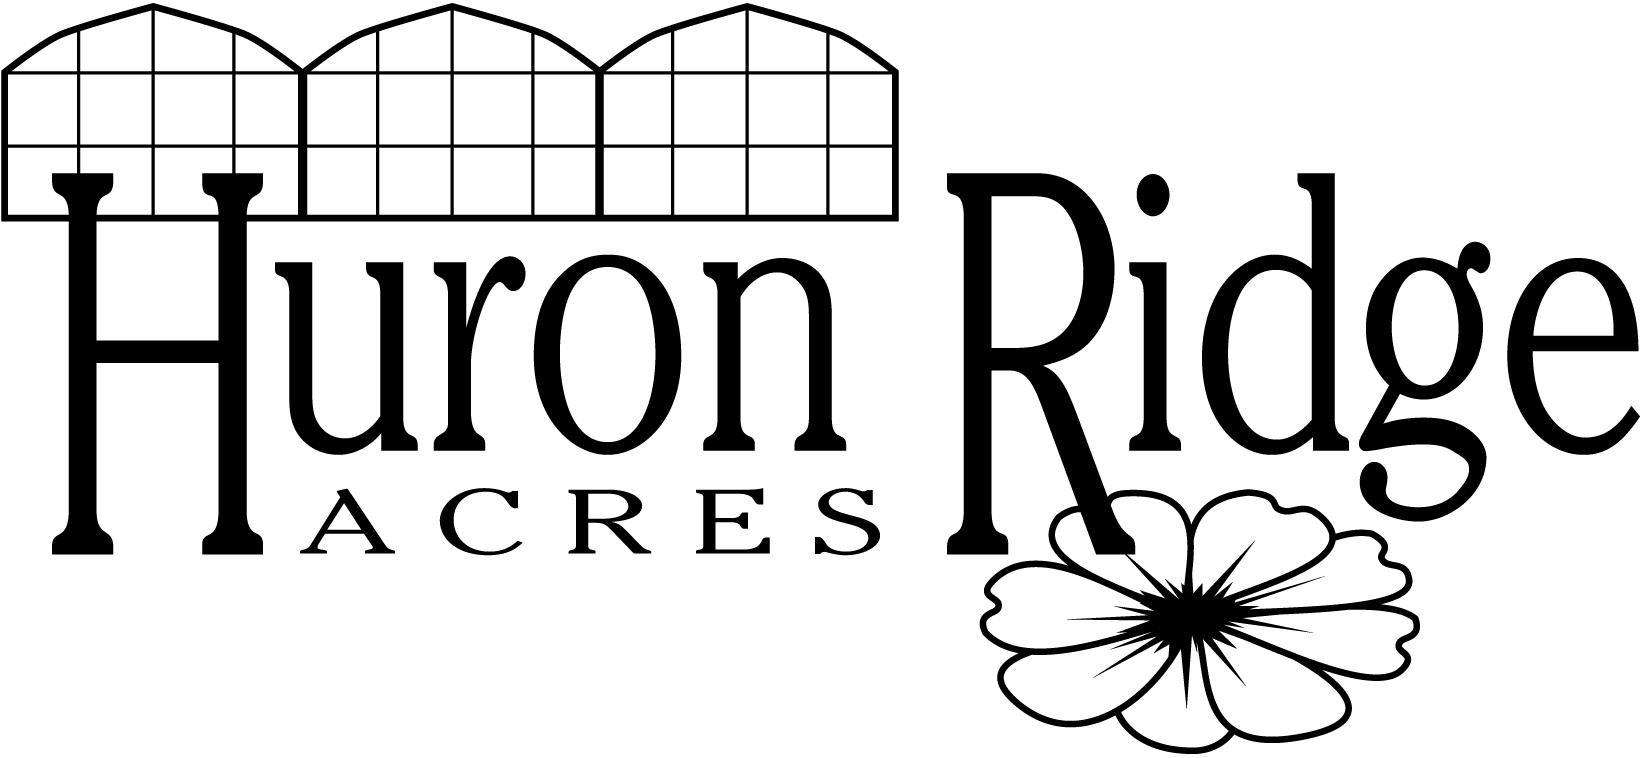 Huron Ridge Acres